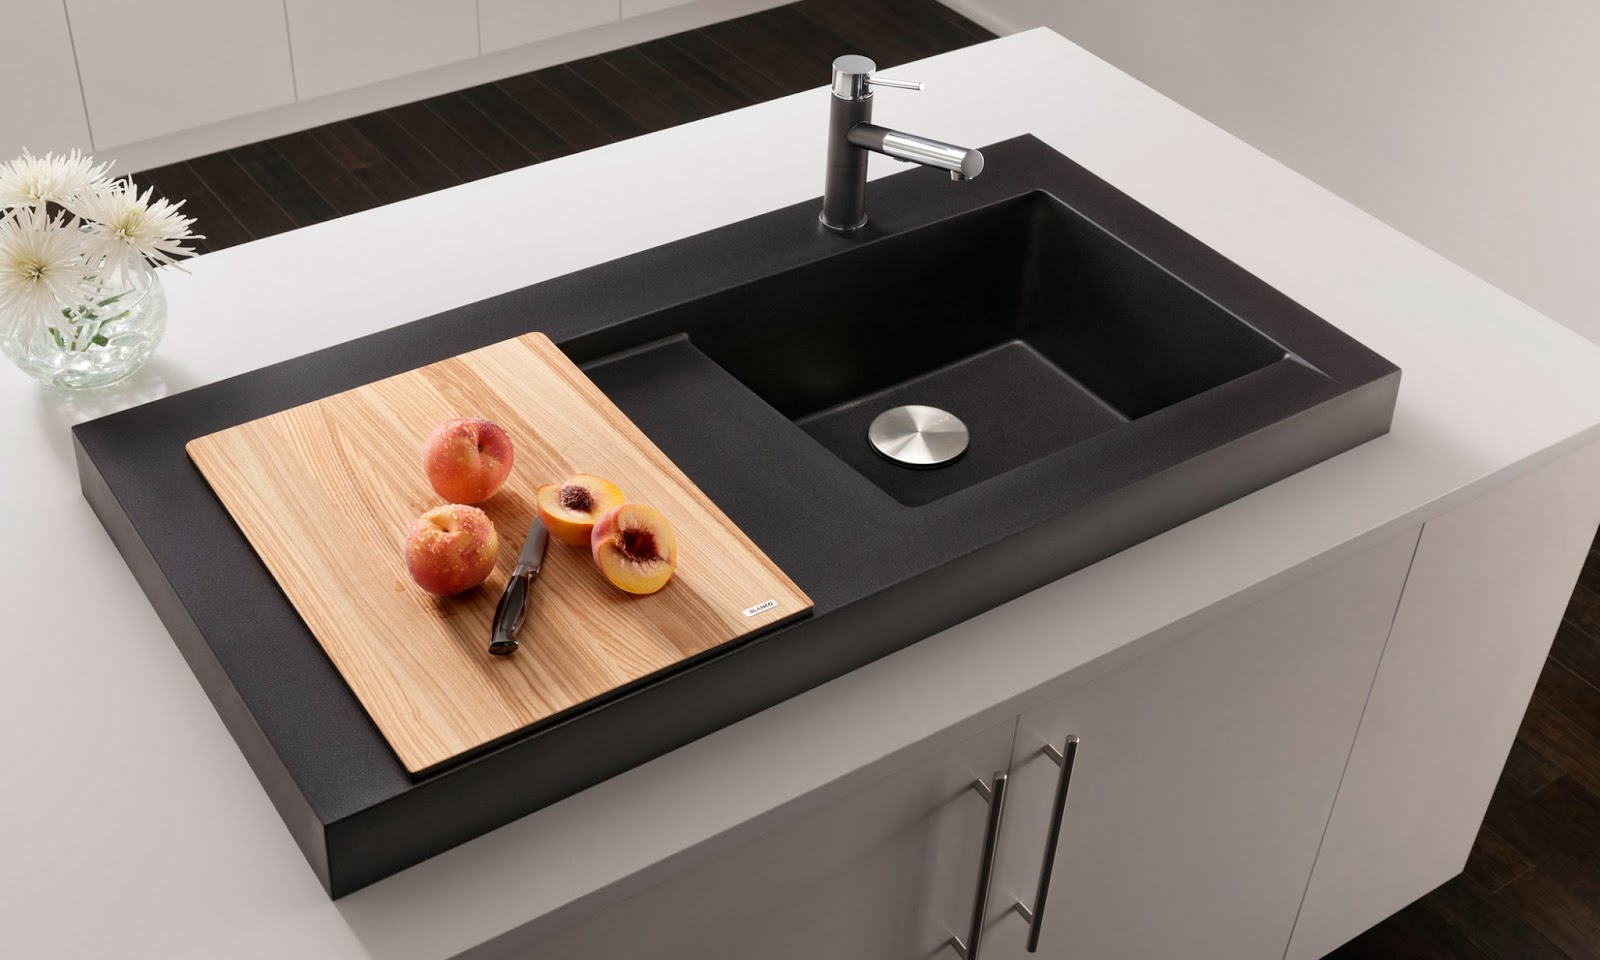 Blanco Undermount Kitchen Sinks Bar Counter Lisa Mende Design Want To See A Drop Dead Gorgeous